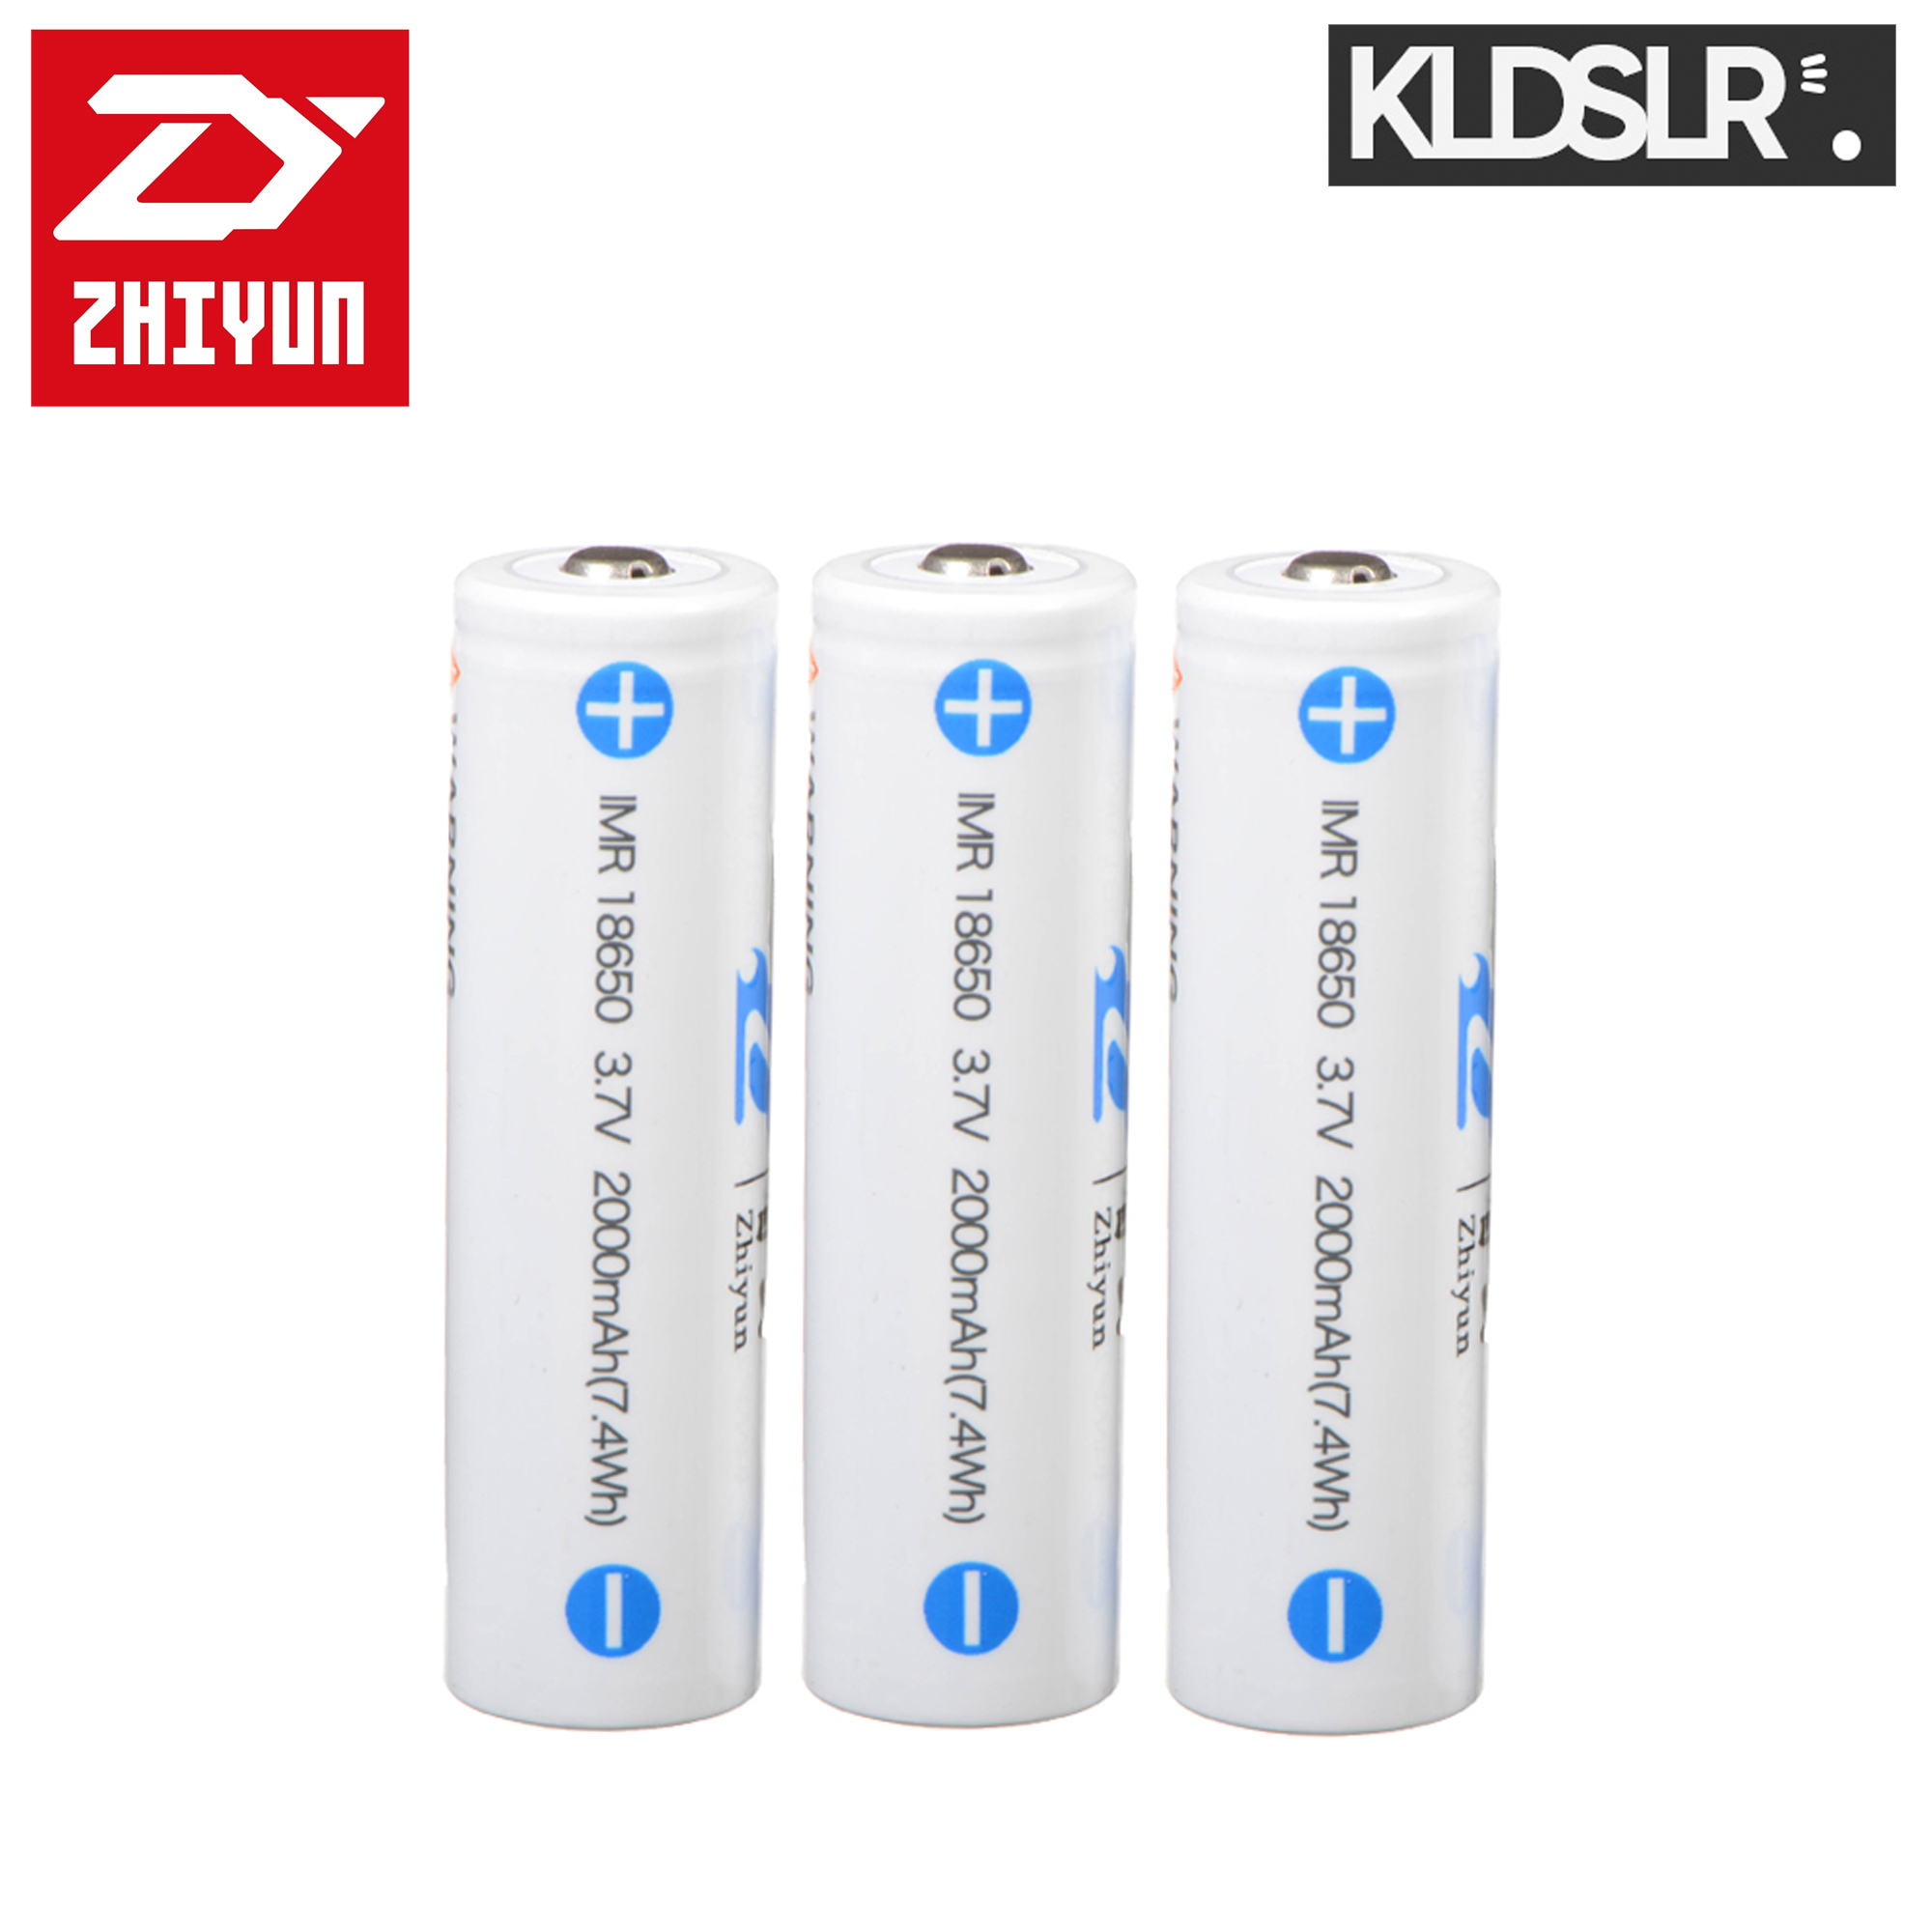 (MIDYEAR) Zhiyun18650 Li-Ion Battery for Crane 2.